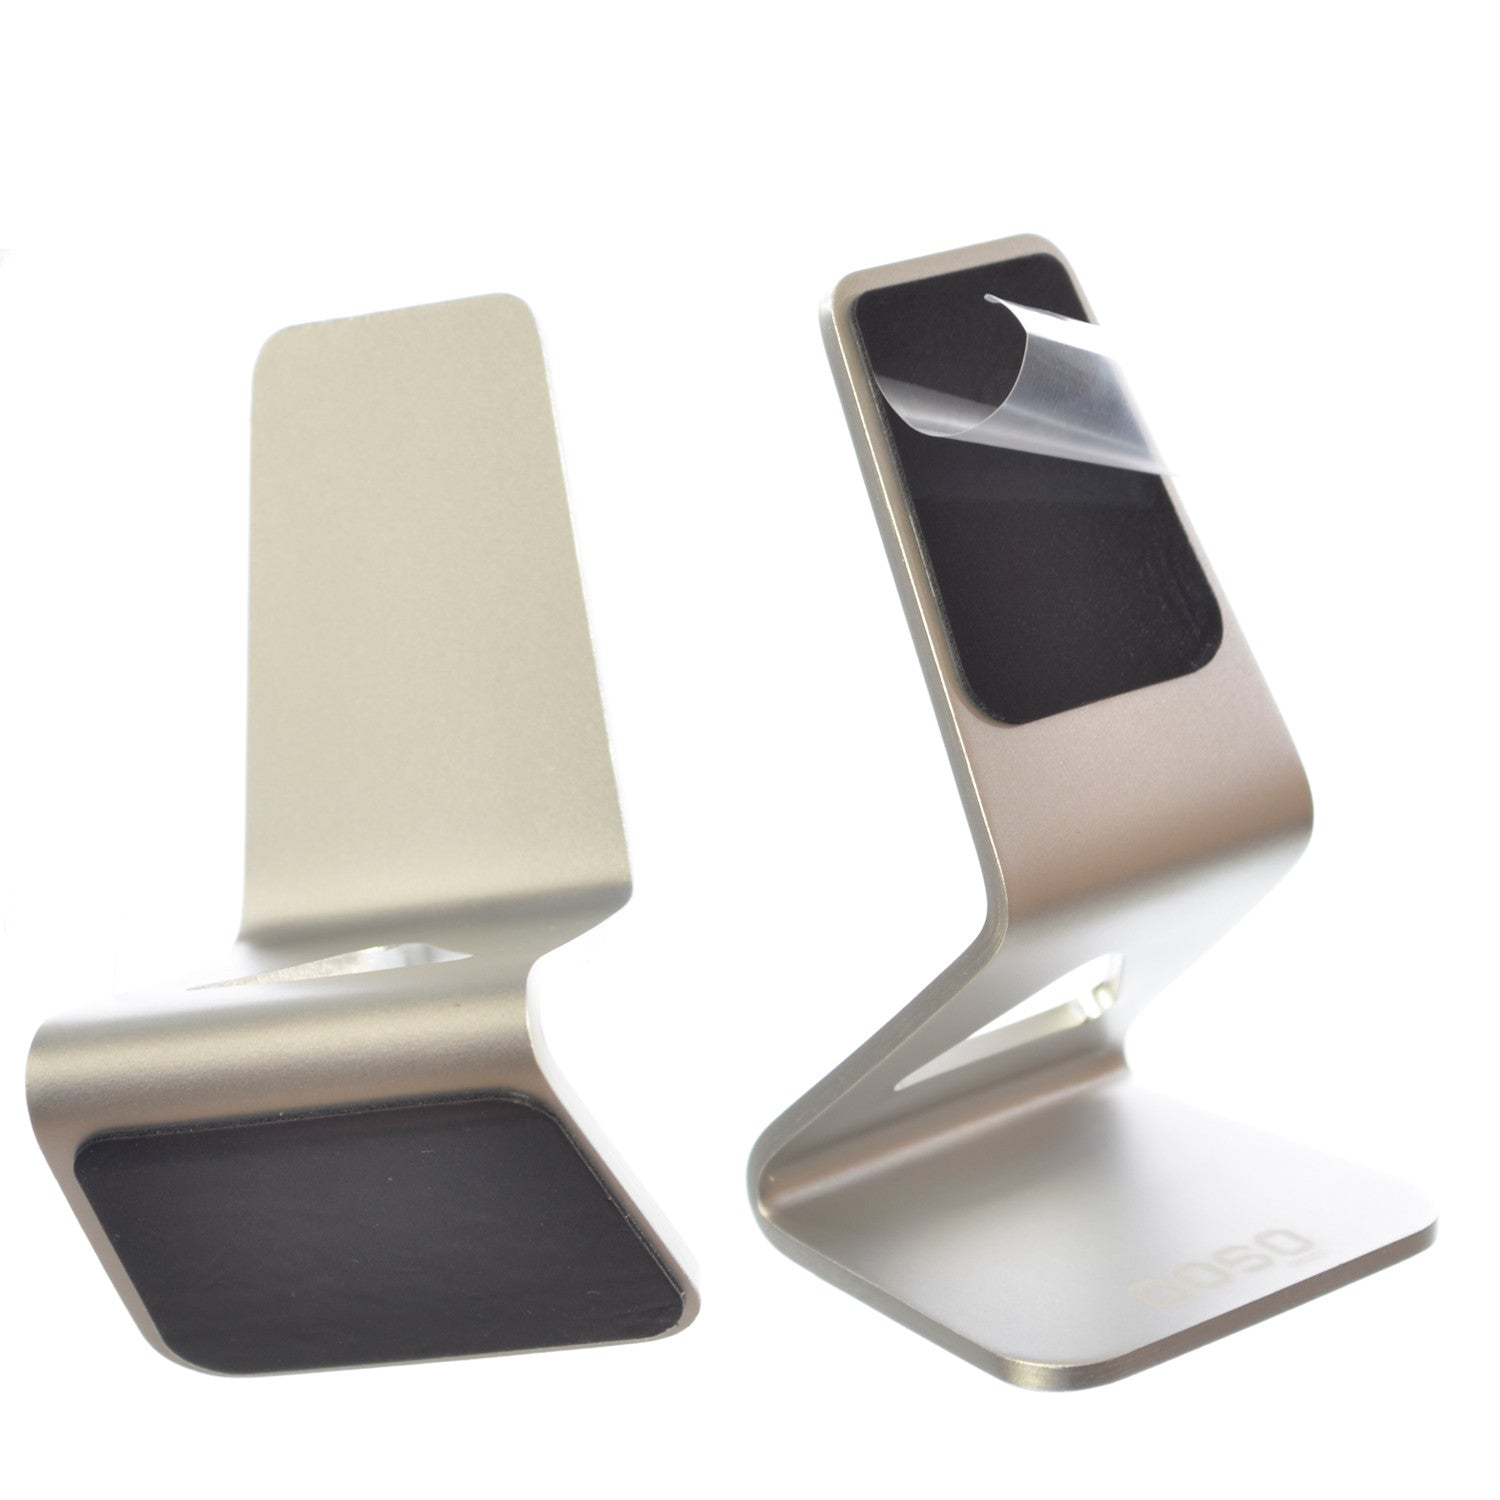 GOSO Phone Stand for Desk Durable Aluminum Cell Phone Stand by